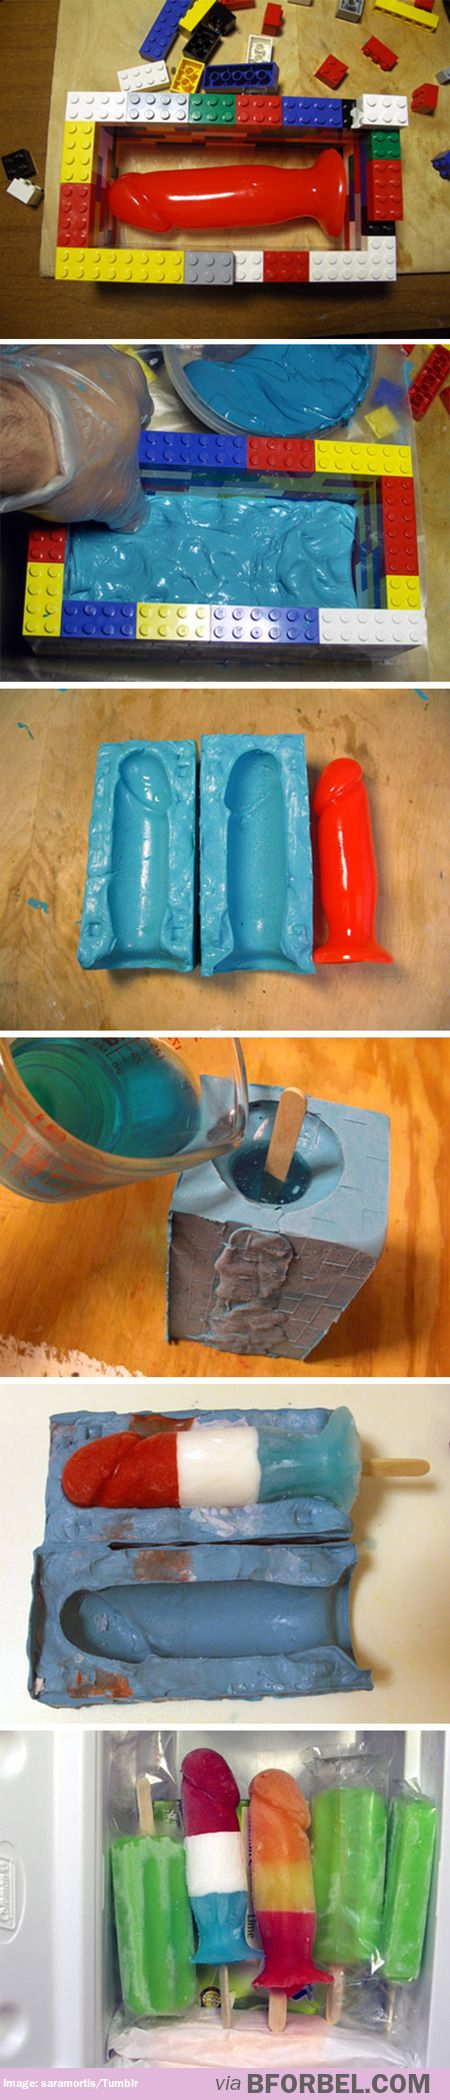 There's actually a tutorial on how to make dildo popsicles omg I can't even